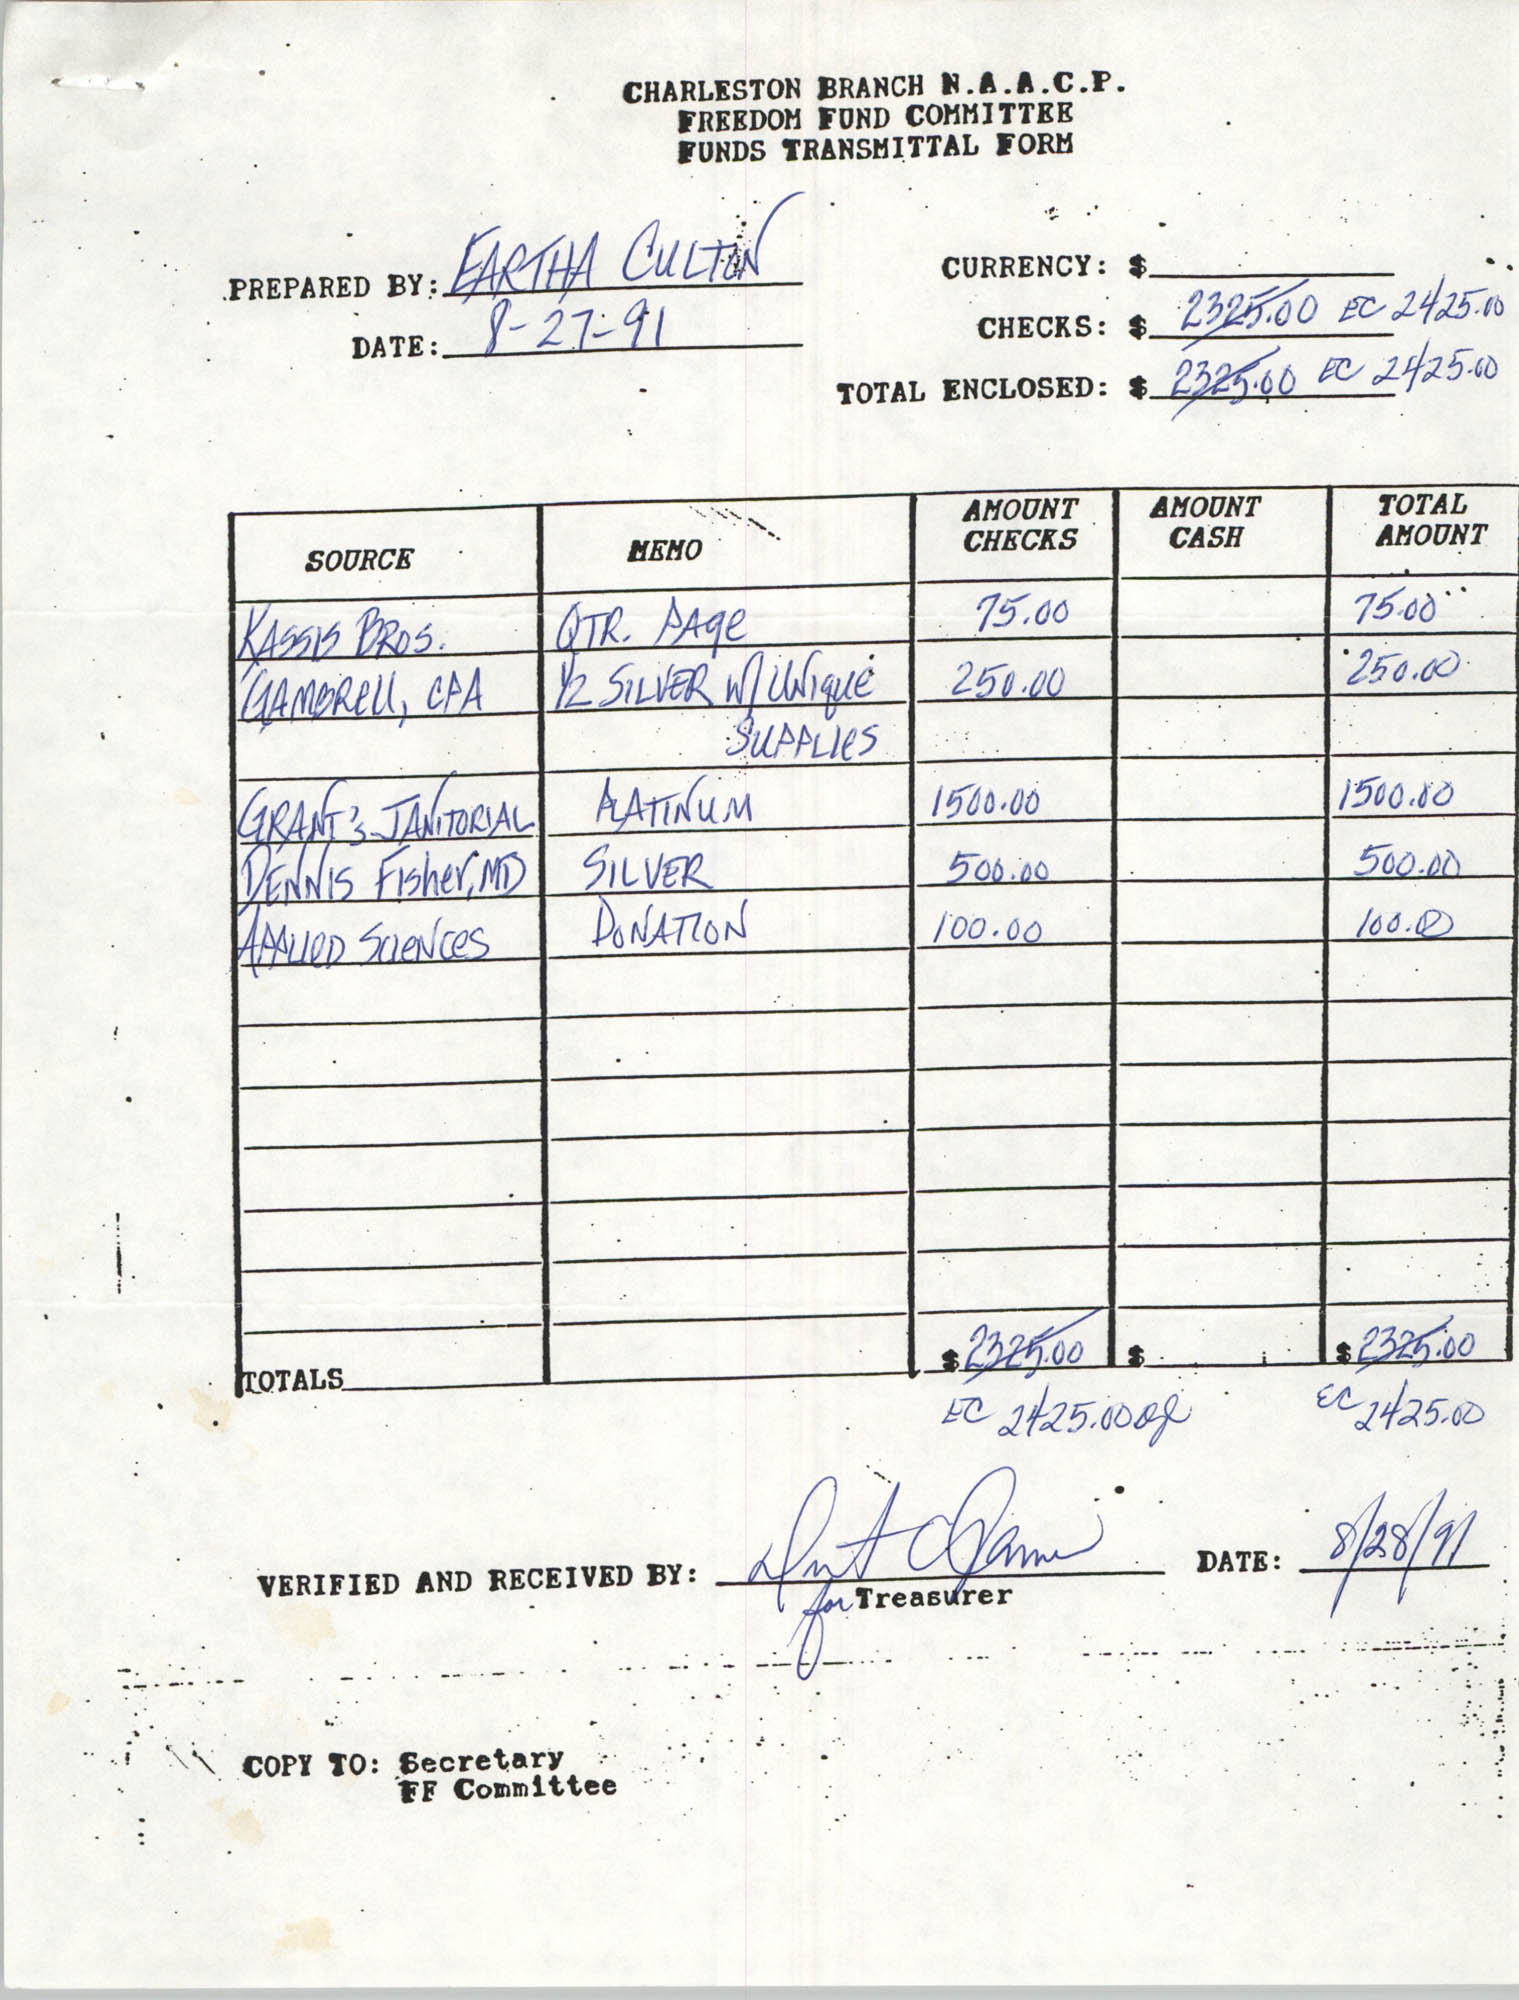 Charleston Branch of the NAACP Funds Transmittal Forms, August 1991, Page 35